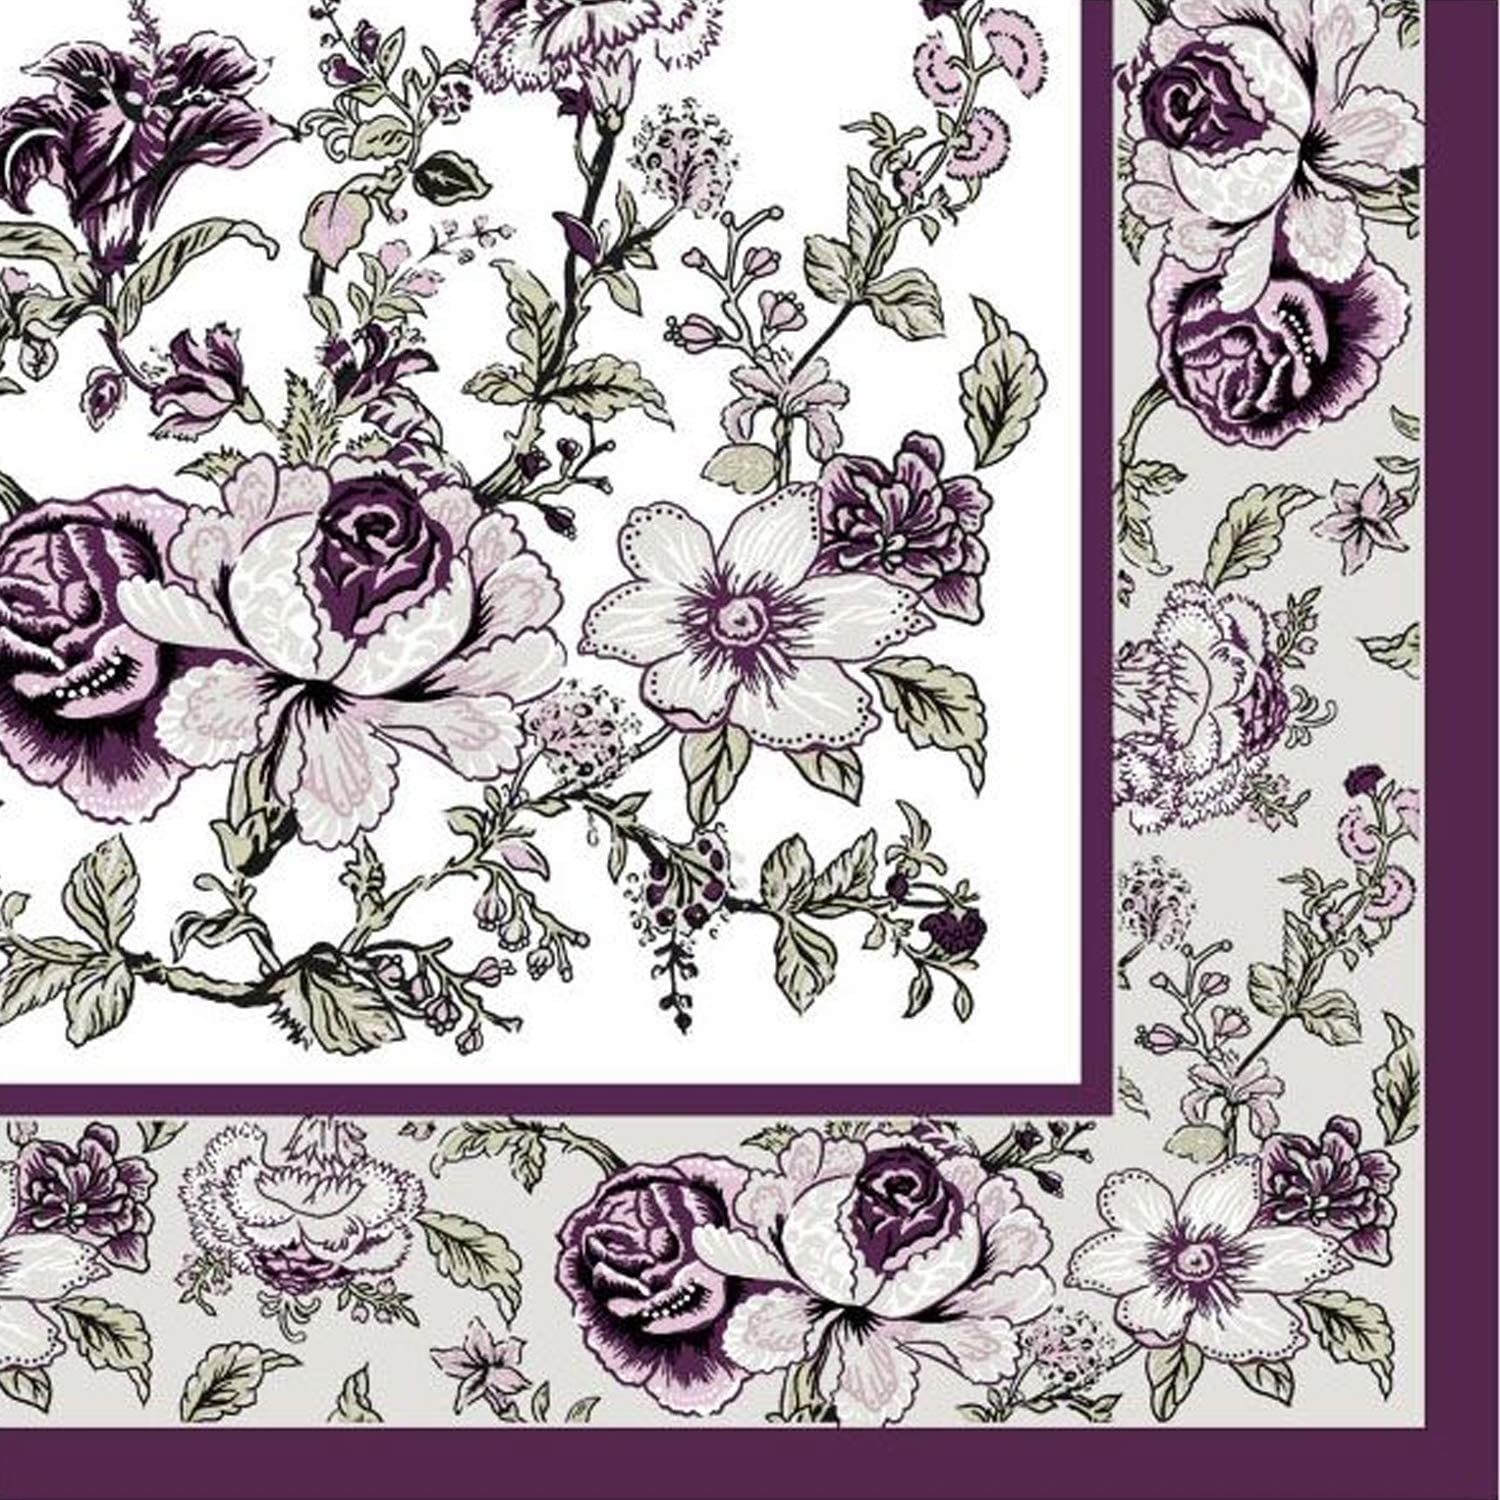 Disposable Paper Eggplant Bountiful Blossoms Lunch Napkins, Wedding, Bridal Shower, Birthday Party, Decoration Supplies, Holidays, Folded Size 6.5 x 6.5 Inches, 2-Ply, 20 ct